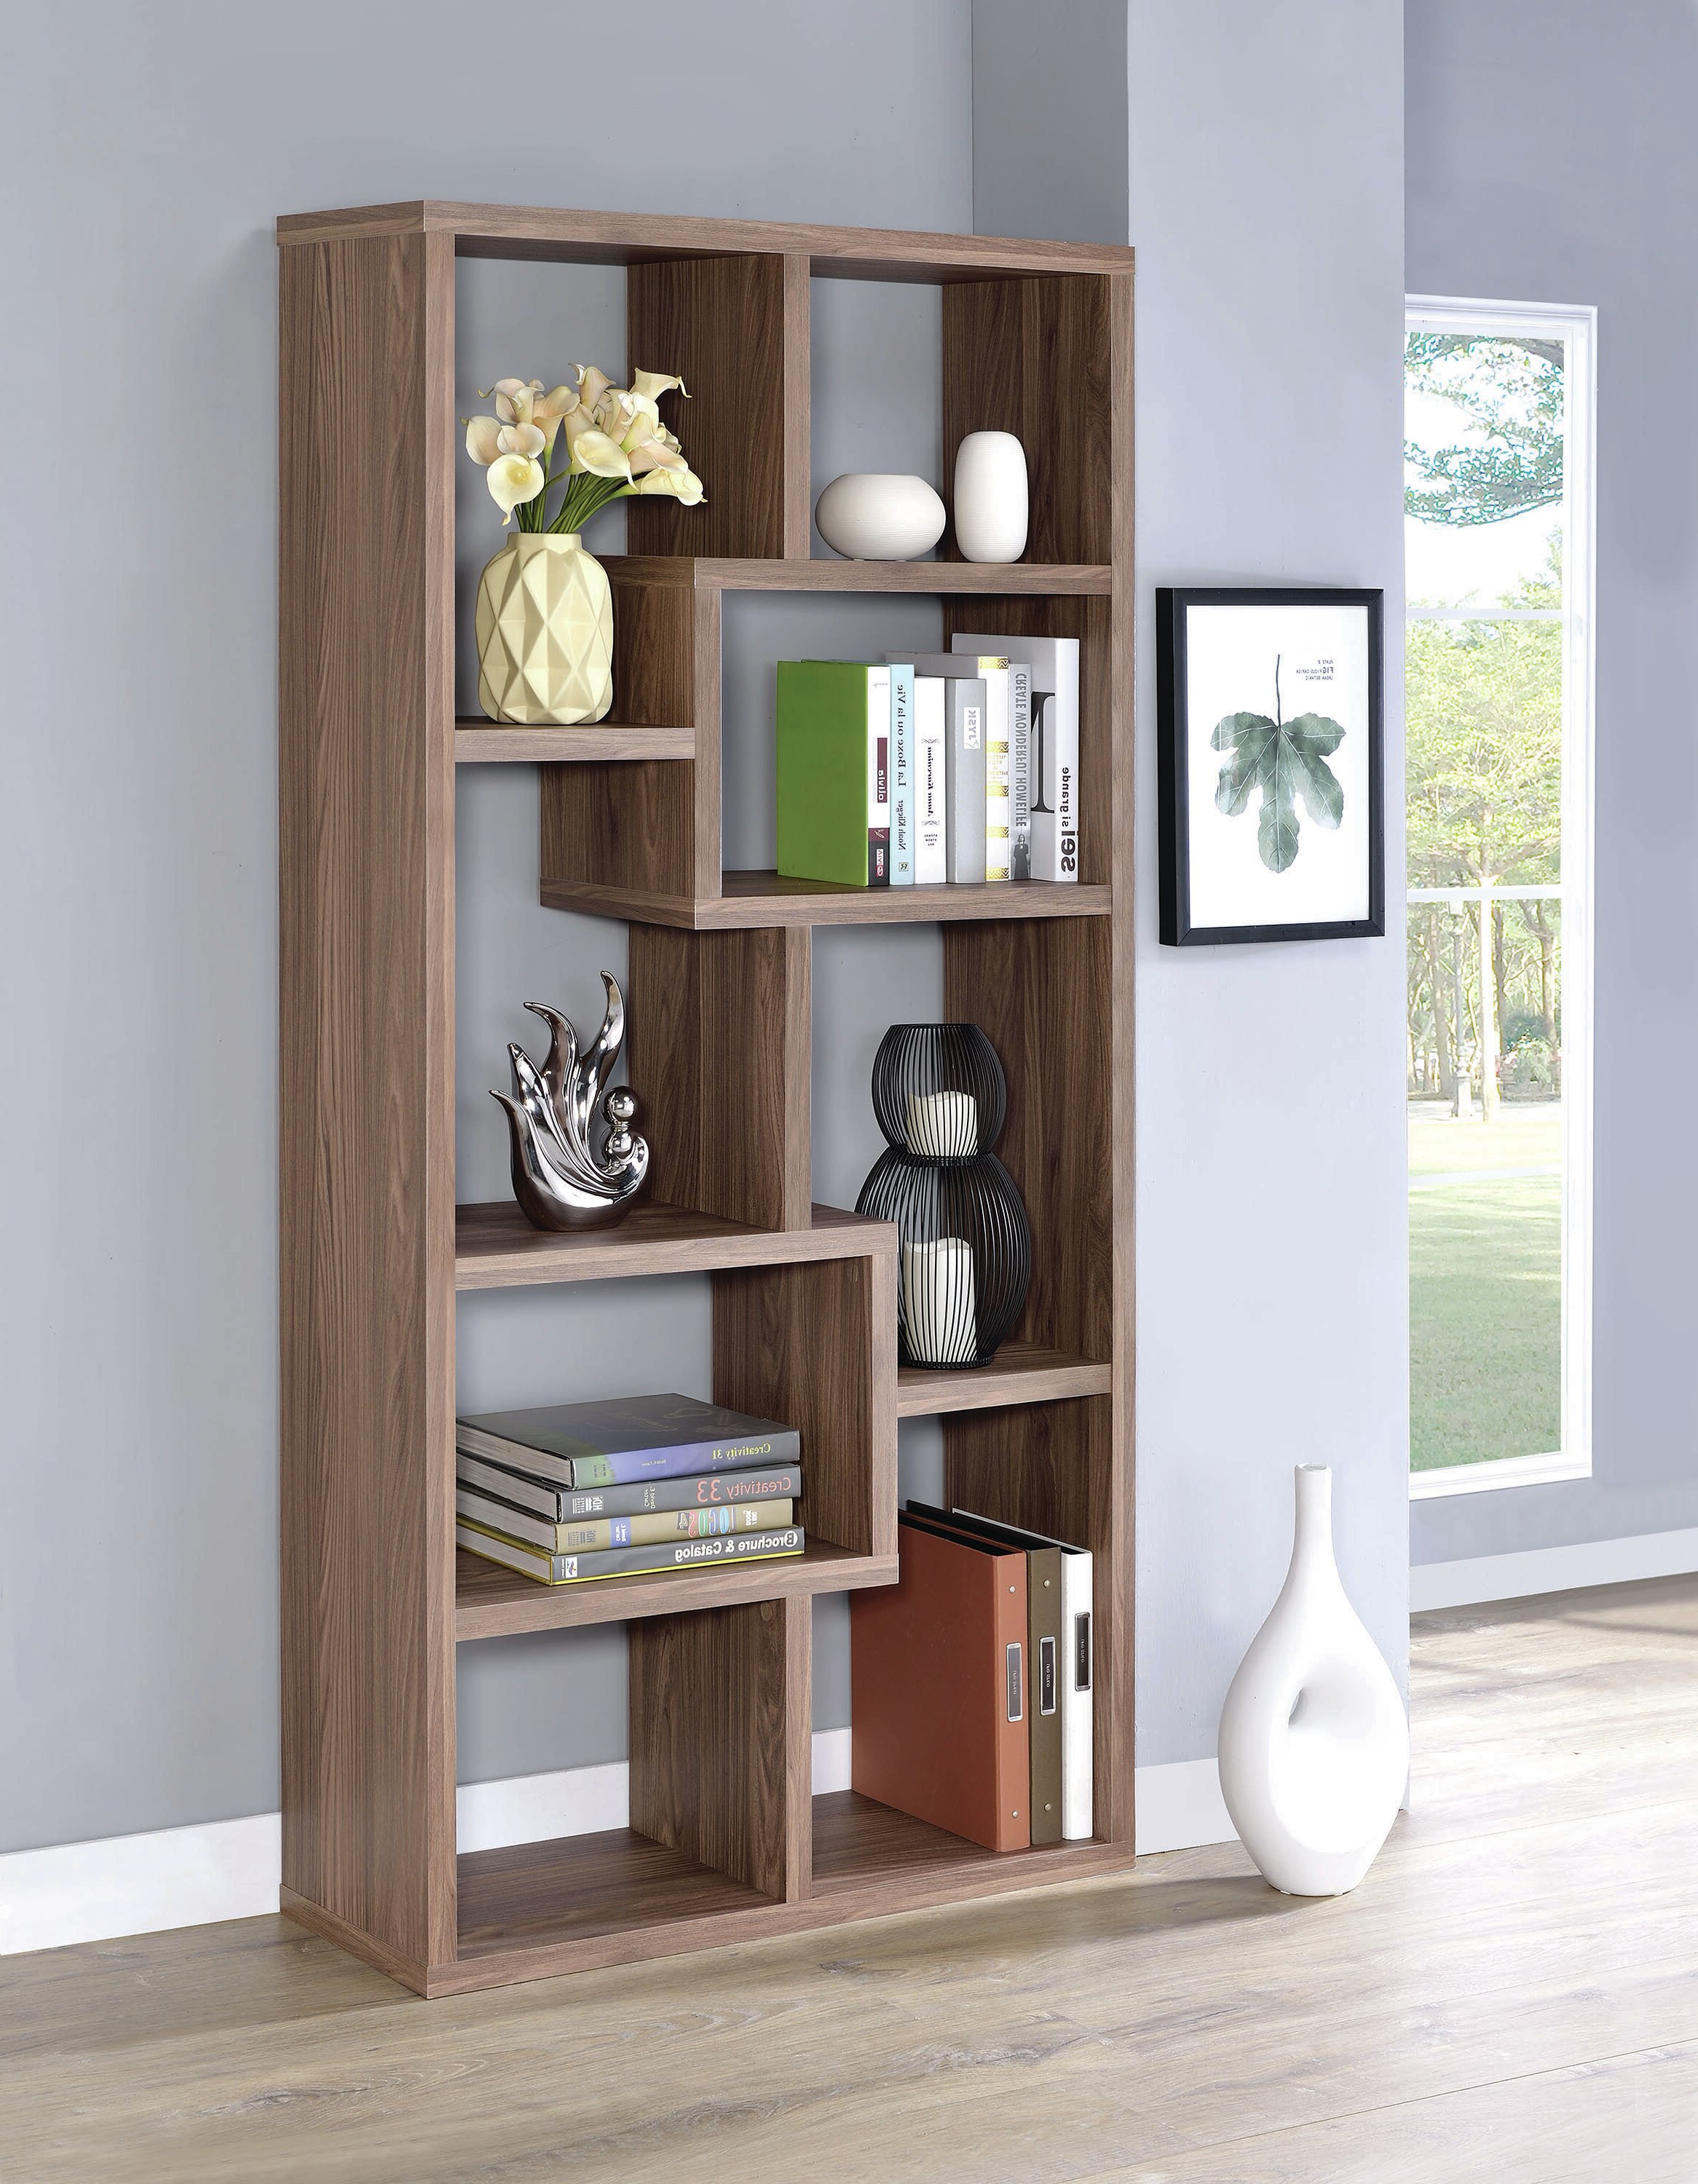 2020 Harkless Standard Bookcases Inside Harkless Geometric Bookcase (View 4 of 20)